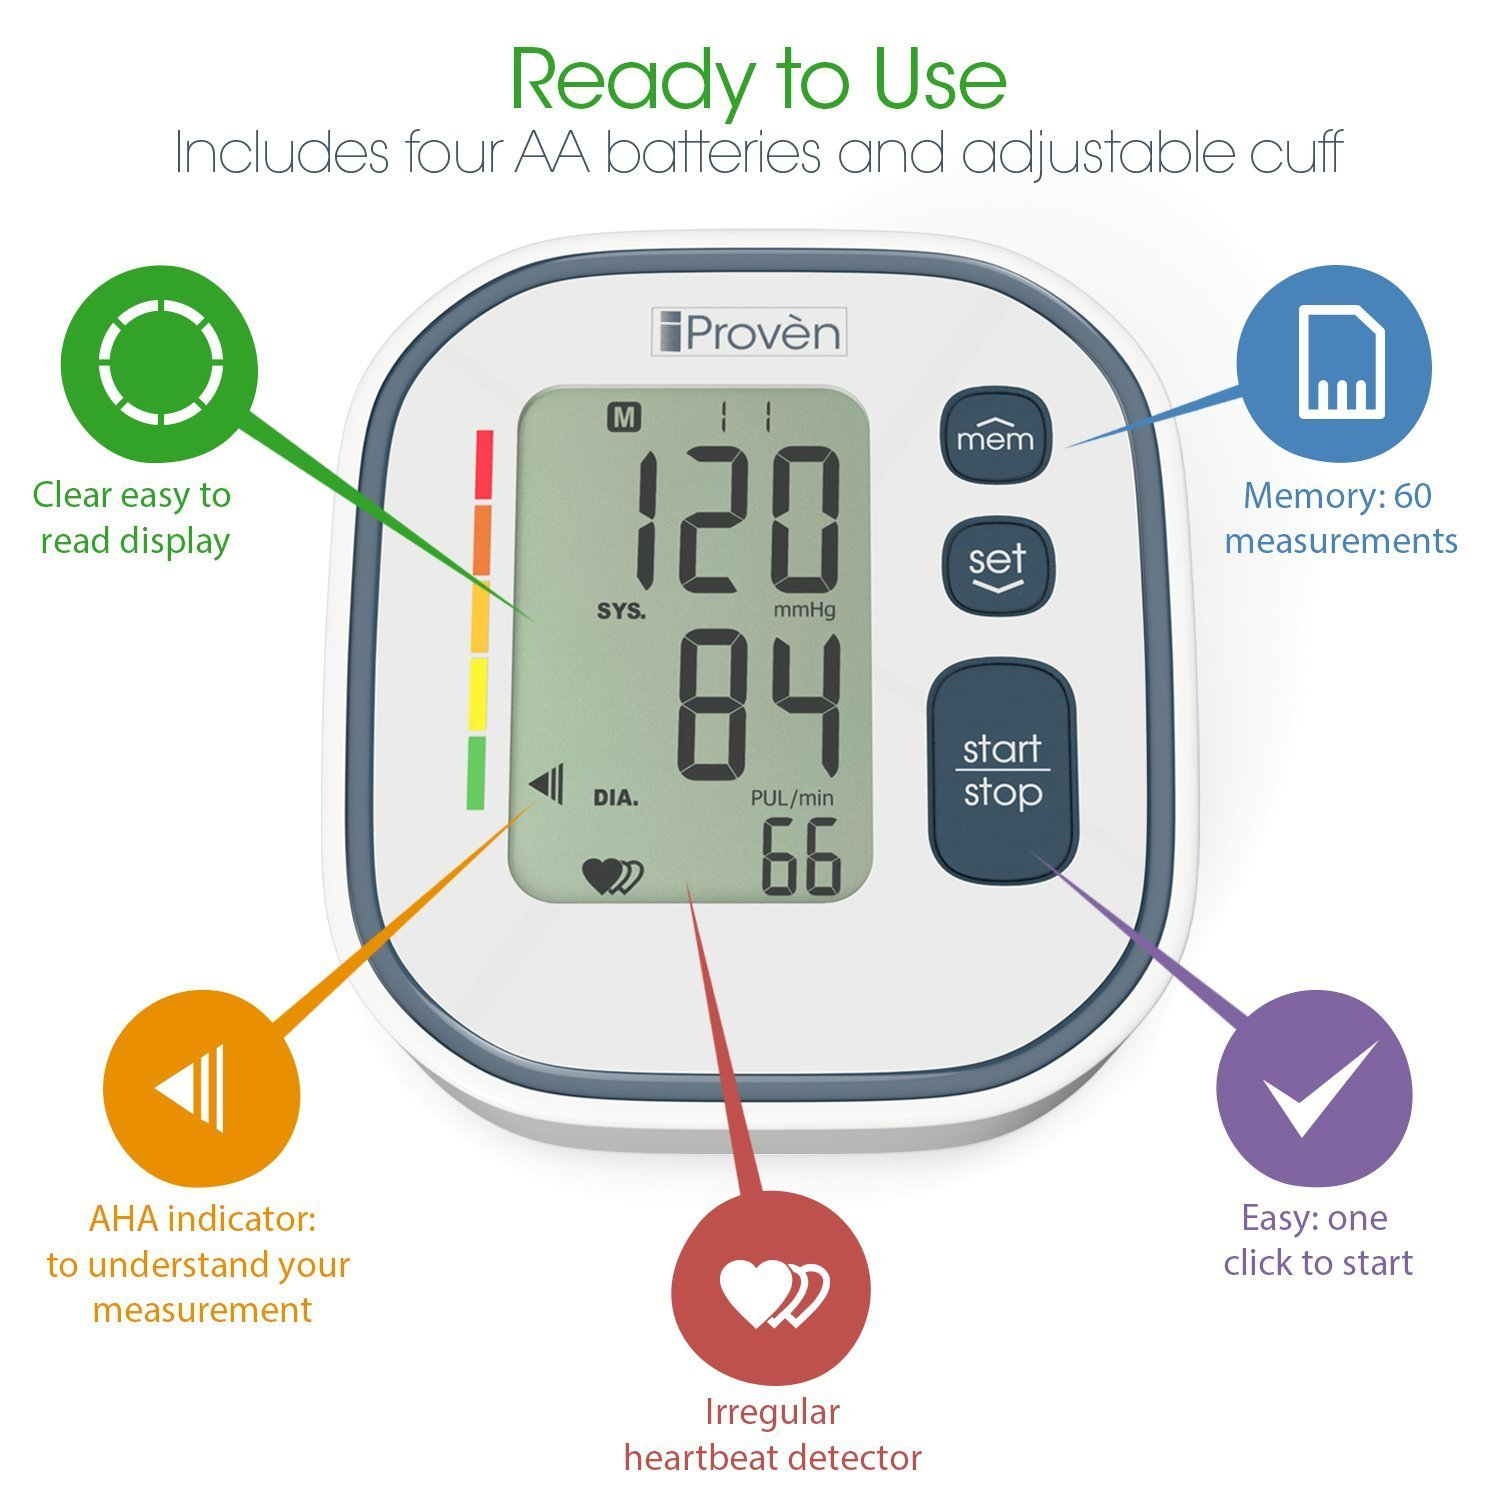 Digital Automatic Blood Pressure Monitor - Upper Arm Cuff - Large Screen - Accurate & Fast Reading Electronic Machine - Top Rated BP Monitors and Cuffs - FDA Approved - iProvèn BPM-634 - for Home Use by iProvèn (Image #4)